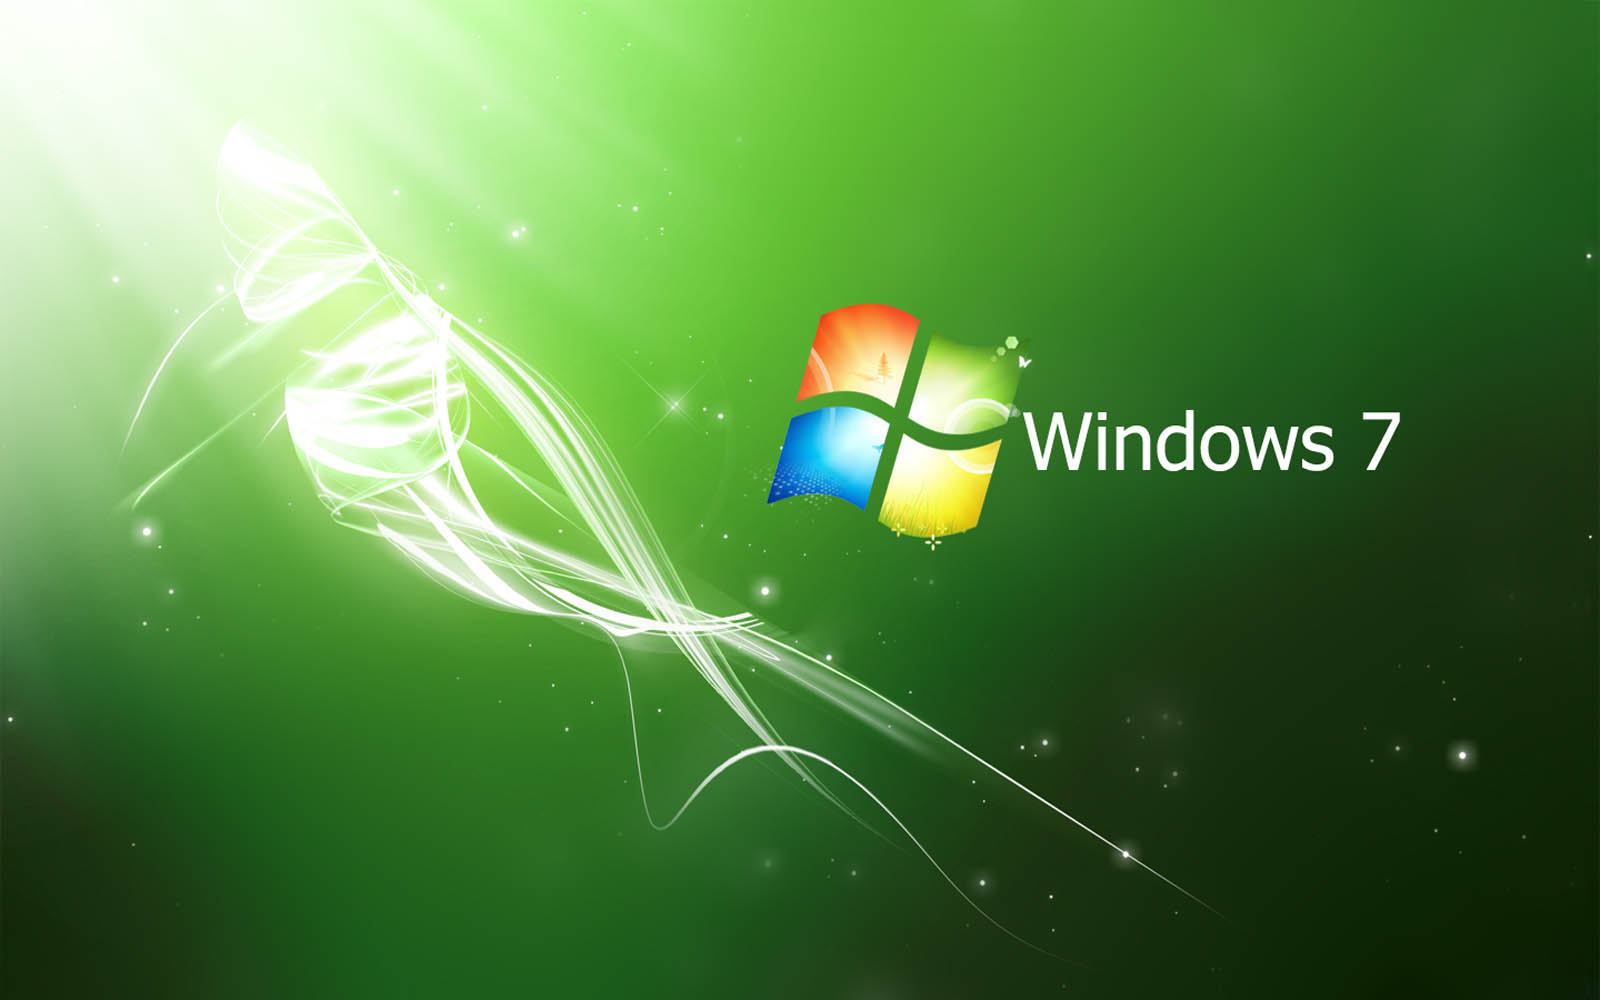 wall paper windows 7 - photo #1